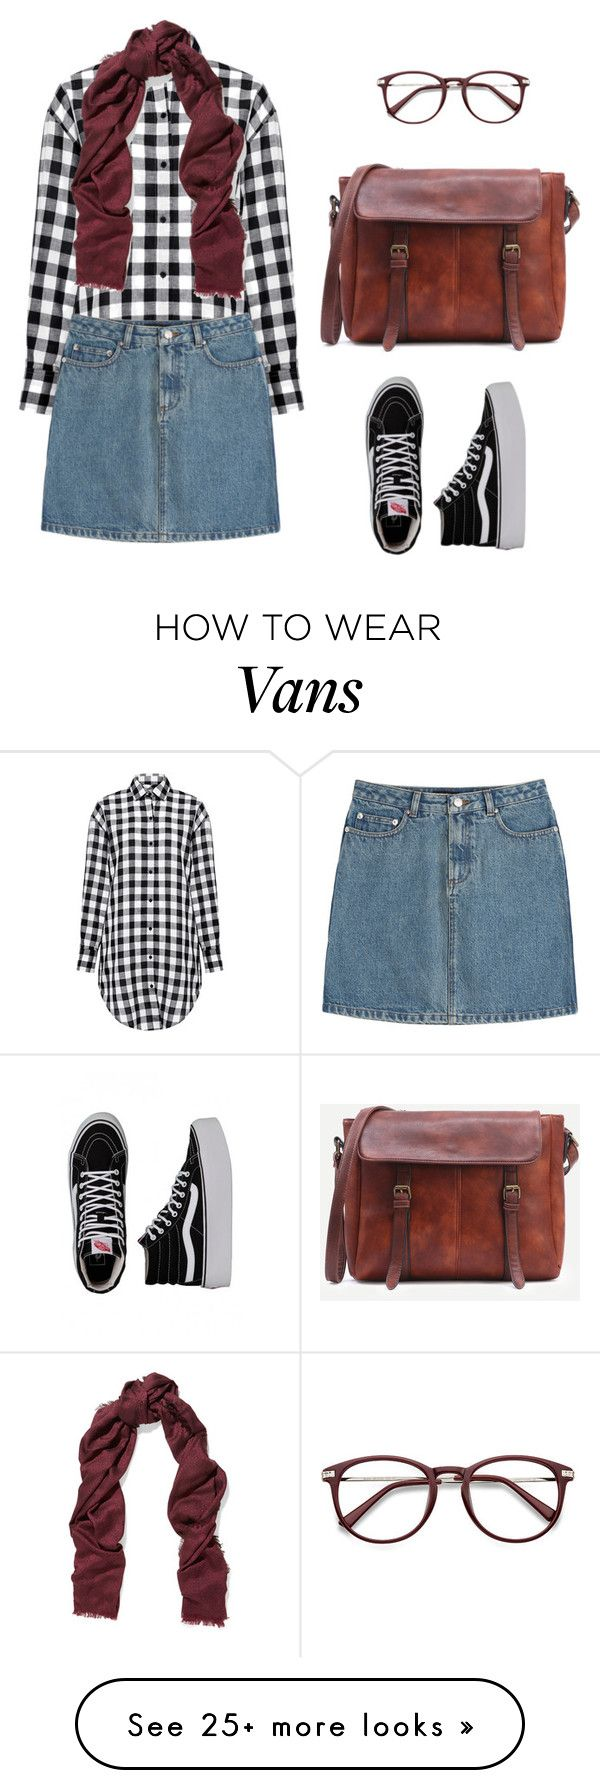 """Untitled #672"" by ichanee on Polyvore featuring IRO, Vans, A.P.C. and Tory Burch"